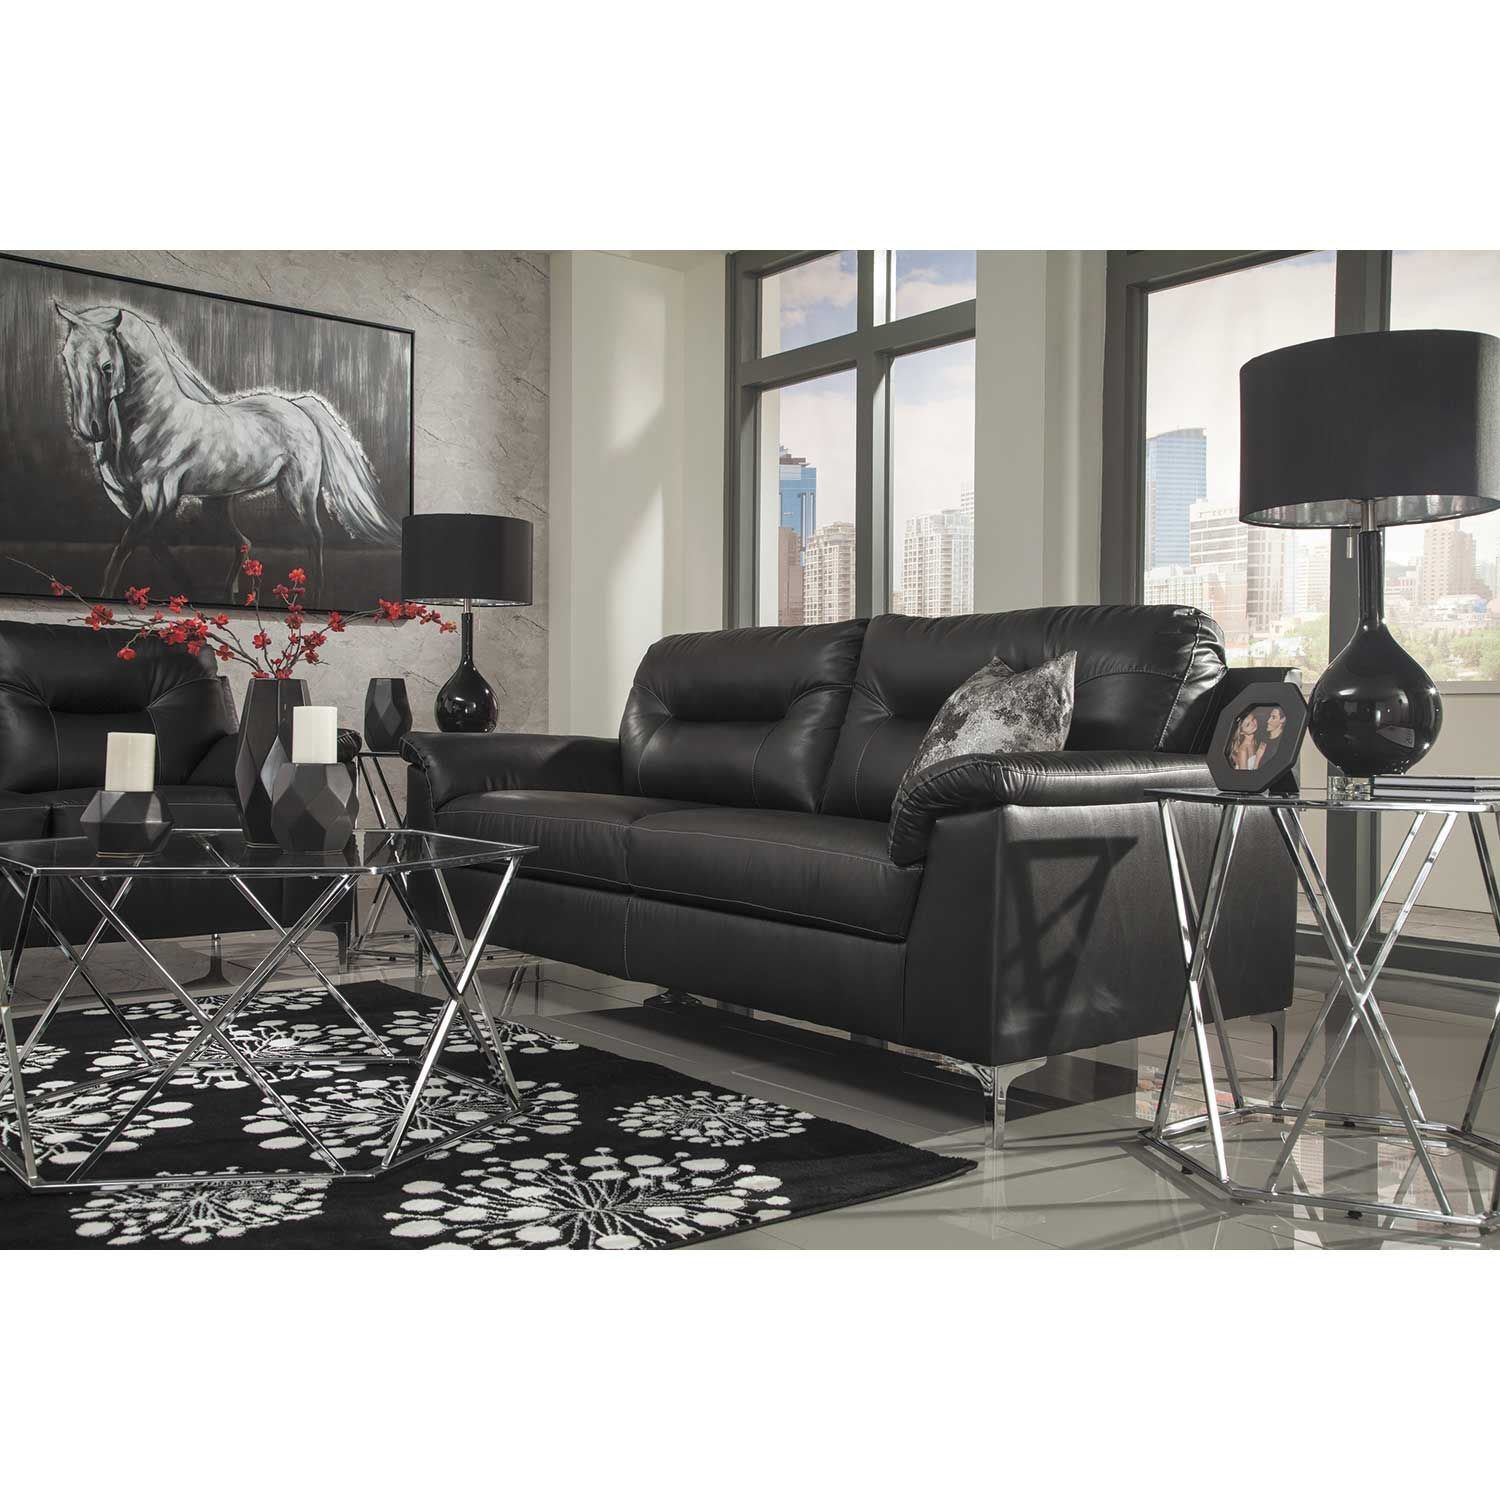 Jcpenney Furniture Store Locations: Tensas Black Sofa